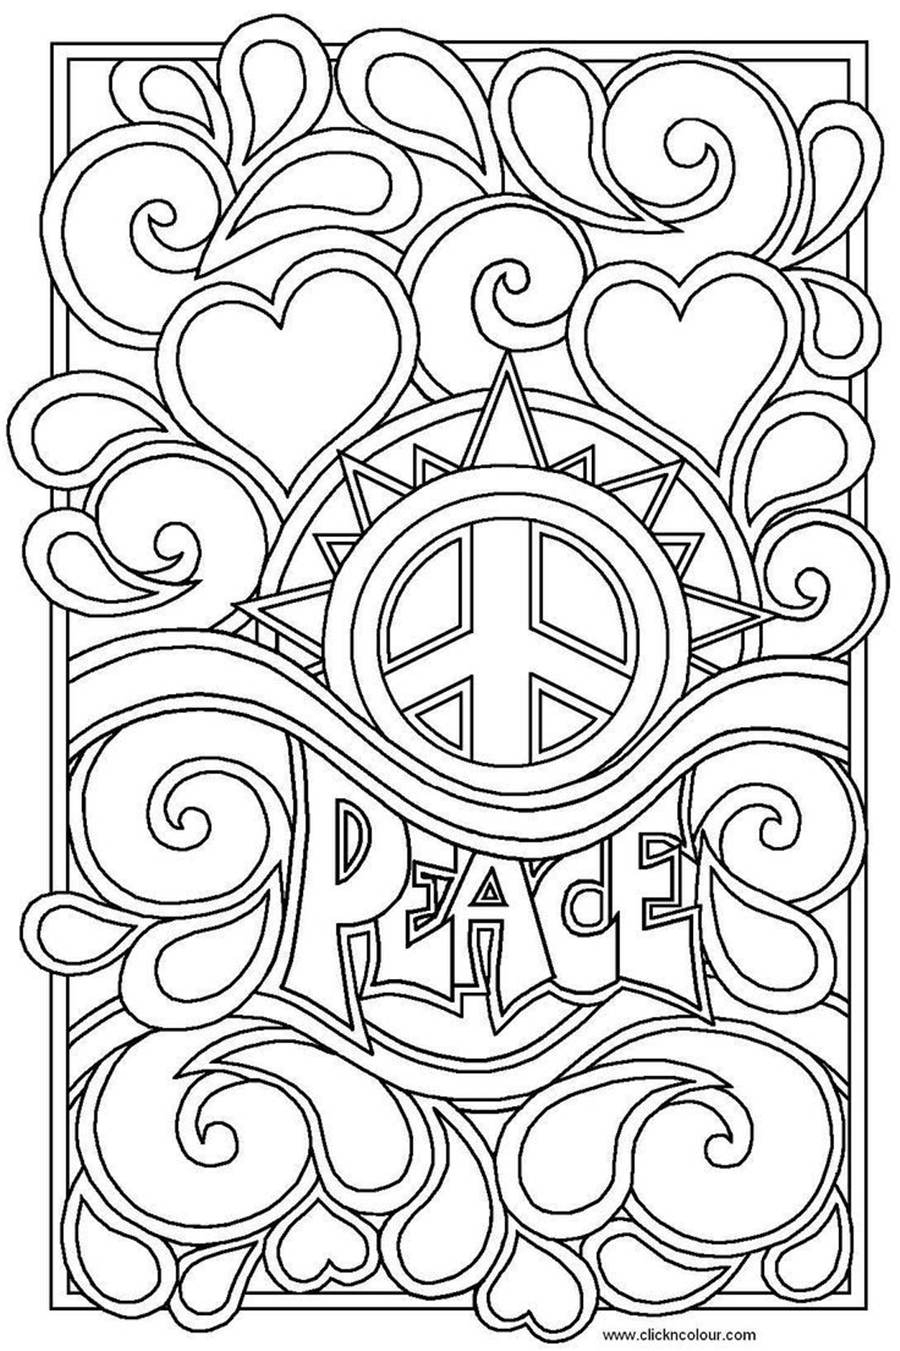 Free Kids Respect Coloring Pages Elegant Easy Drawings - Kid Colorings - Free Printable Coloring Pages On Respect